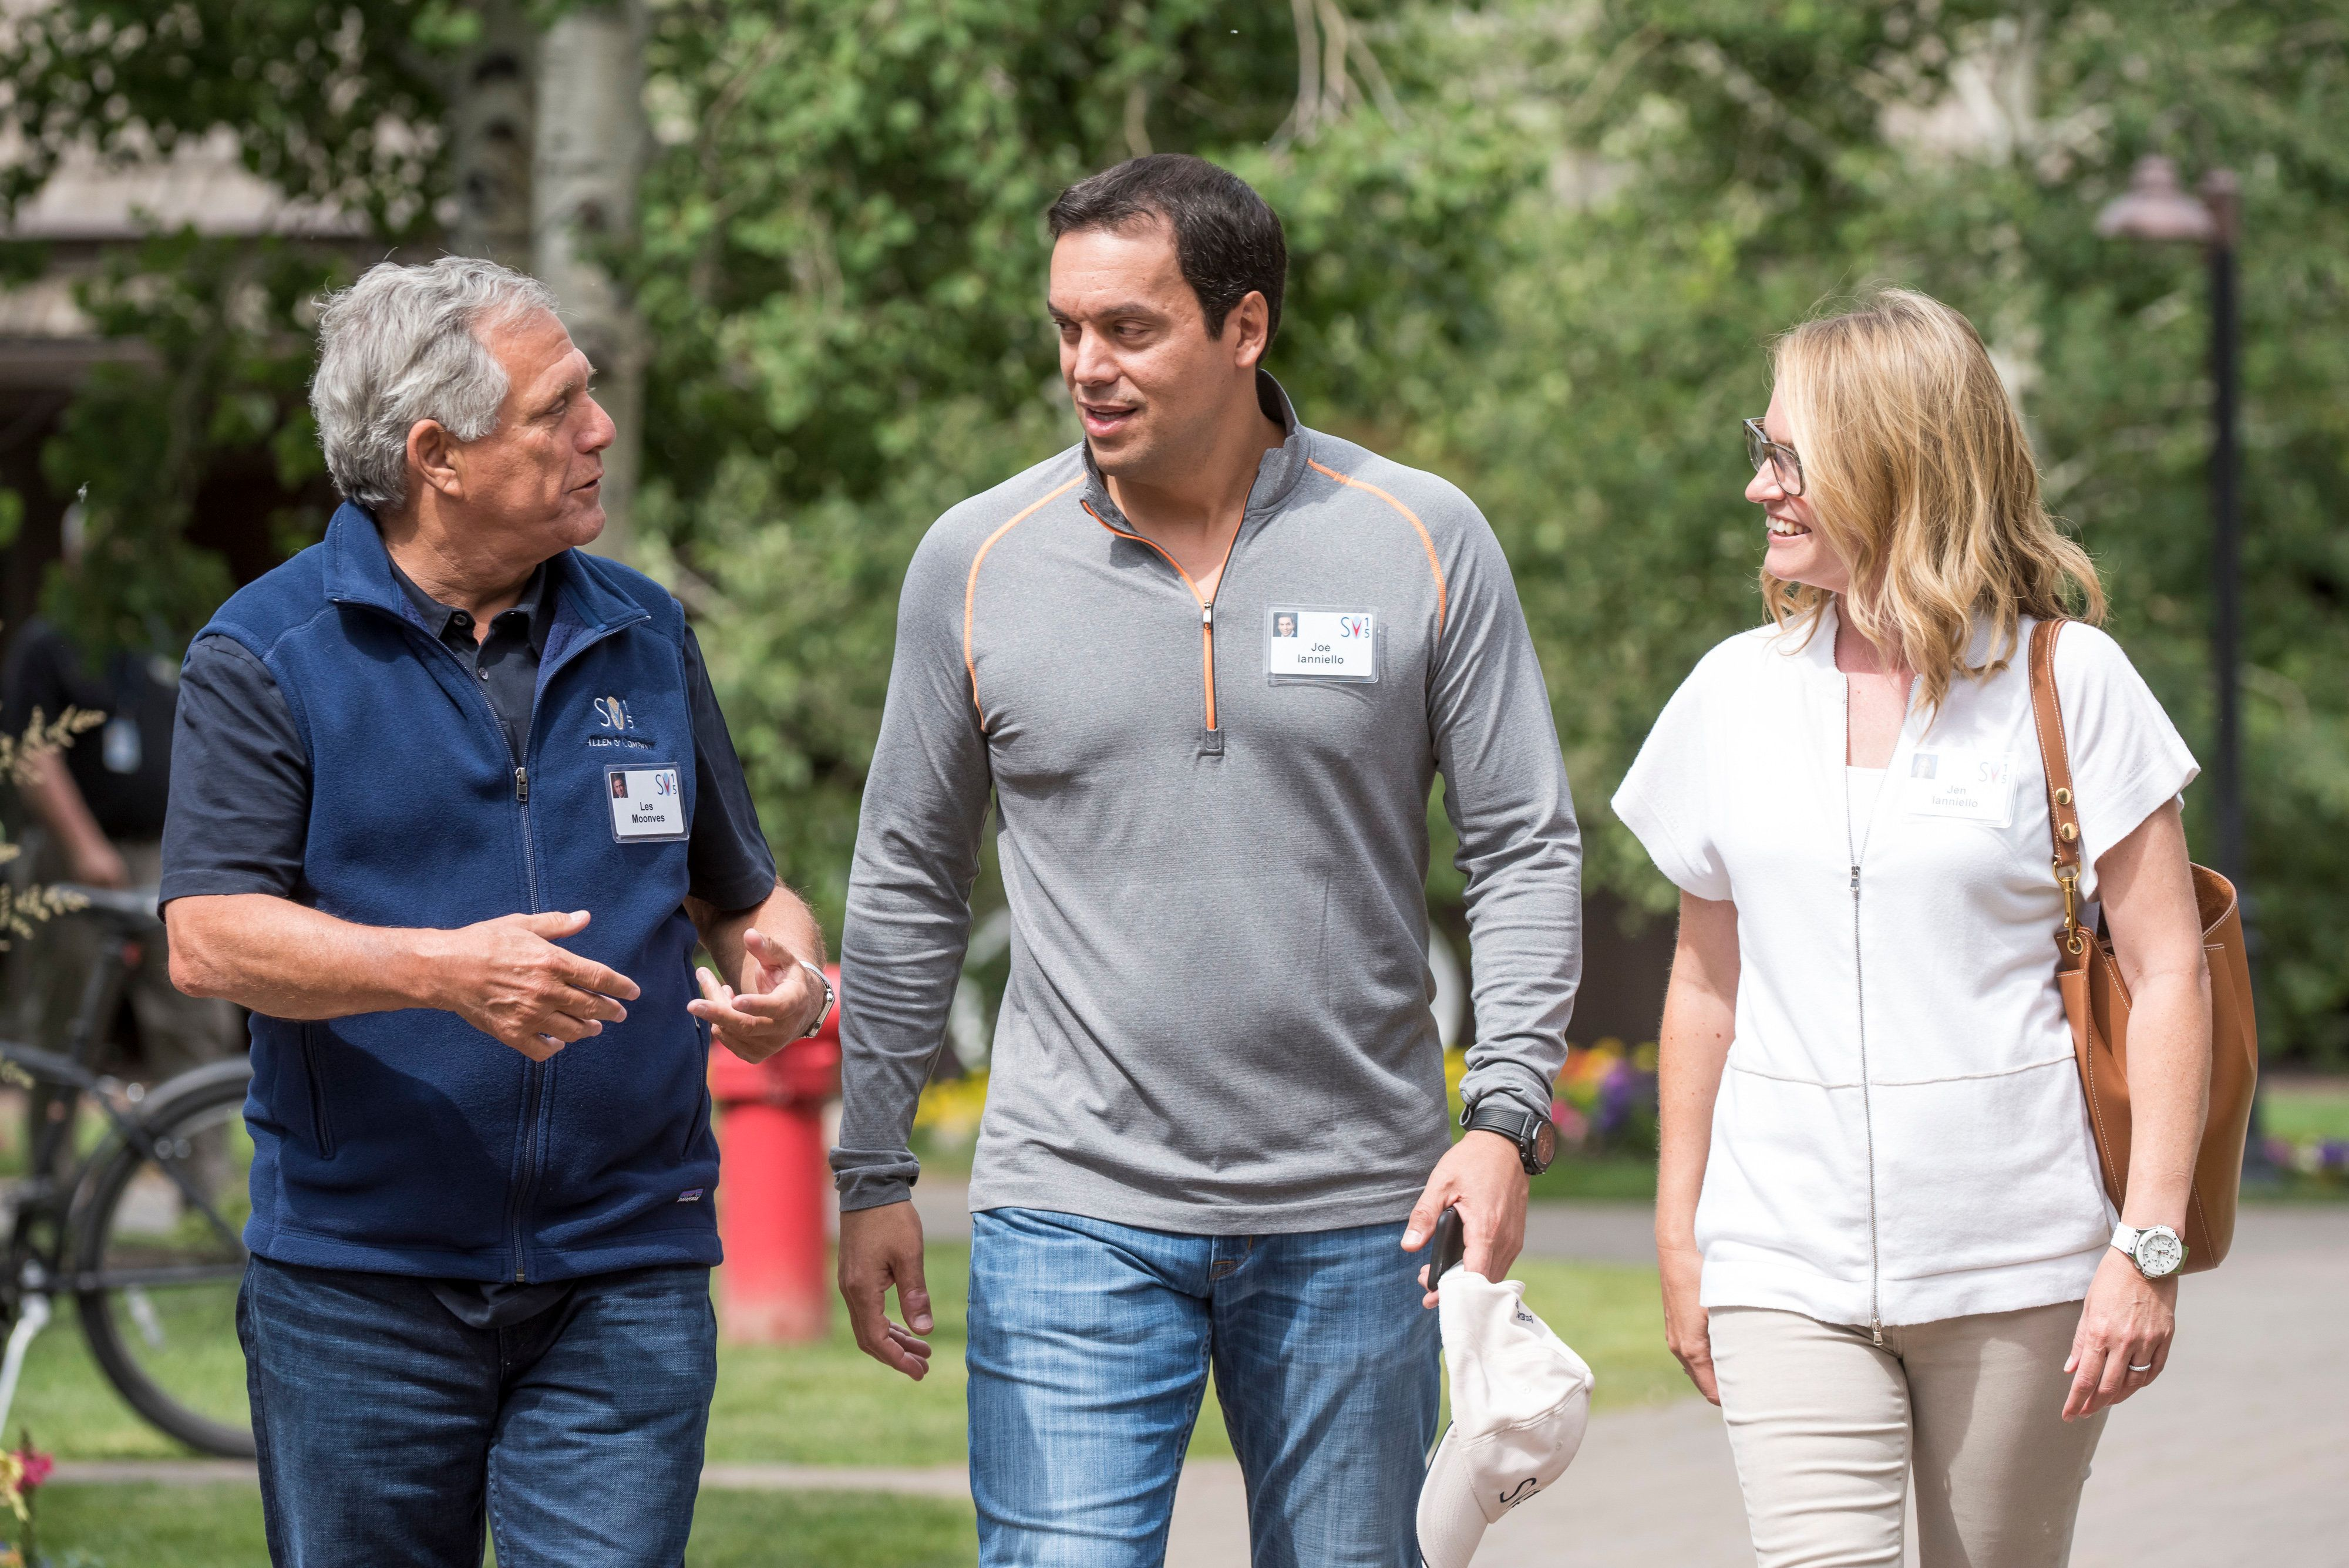 Leslie Moonves, president and chief executive officer of CBS Corp., left, talks with Joe Ianniello, chief operating officer of CBS Corp., center, and Jen Ianniello as they walk the grounds after a morning session during the Allen & Co. Media and Technology Conference in Sun Valley, Idaho, U.S., on Wednesday, July 8, 2015. Billionaires, chief executive officers, and leaders from the technology, media, and finance industries gather this week at the Idaho mountain resort conference hosted by investment banking firm Allen & Co. Photographer: David Paul Morris/Bloomberg via Getty Images